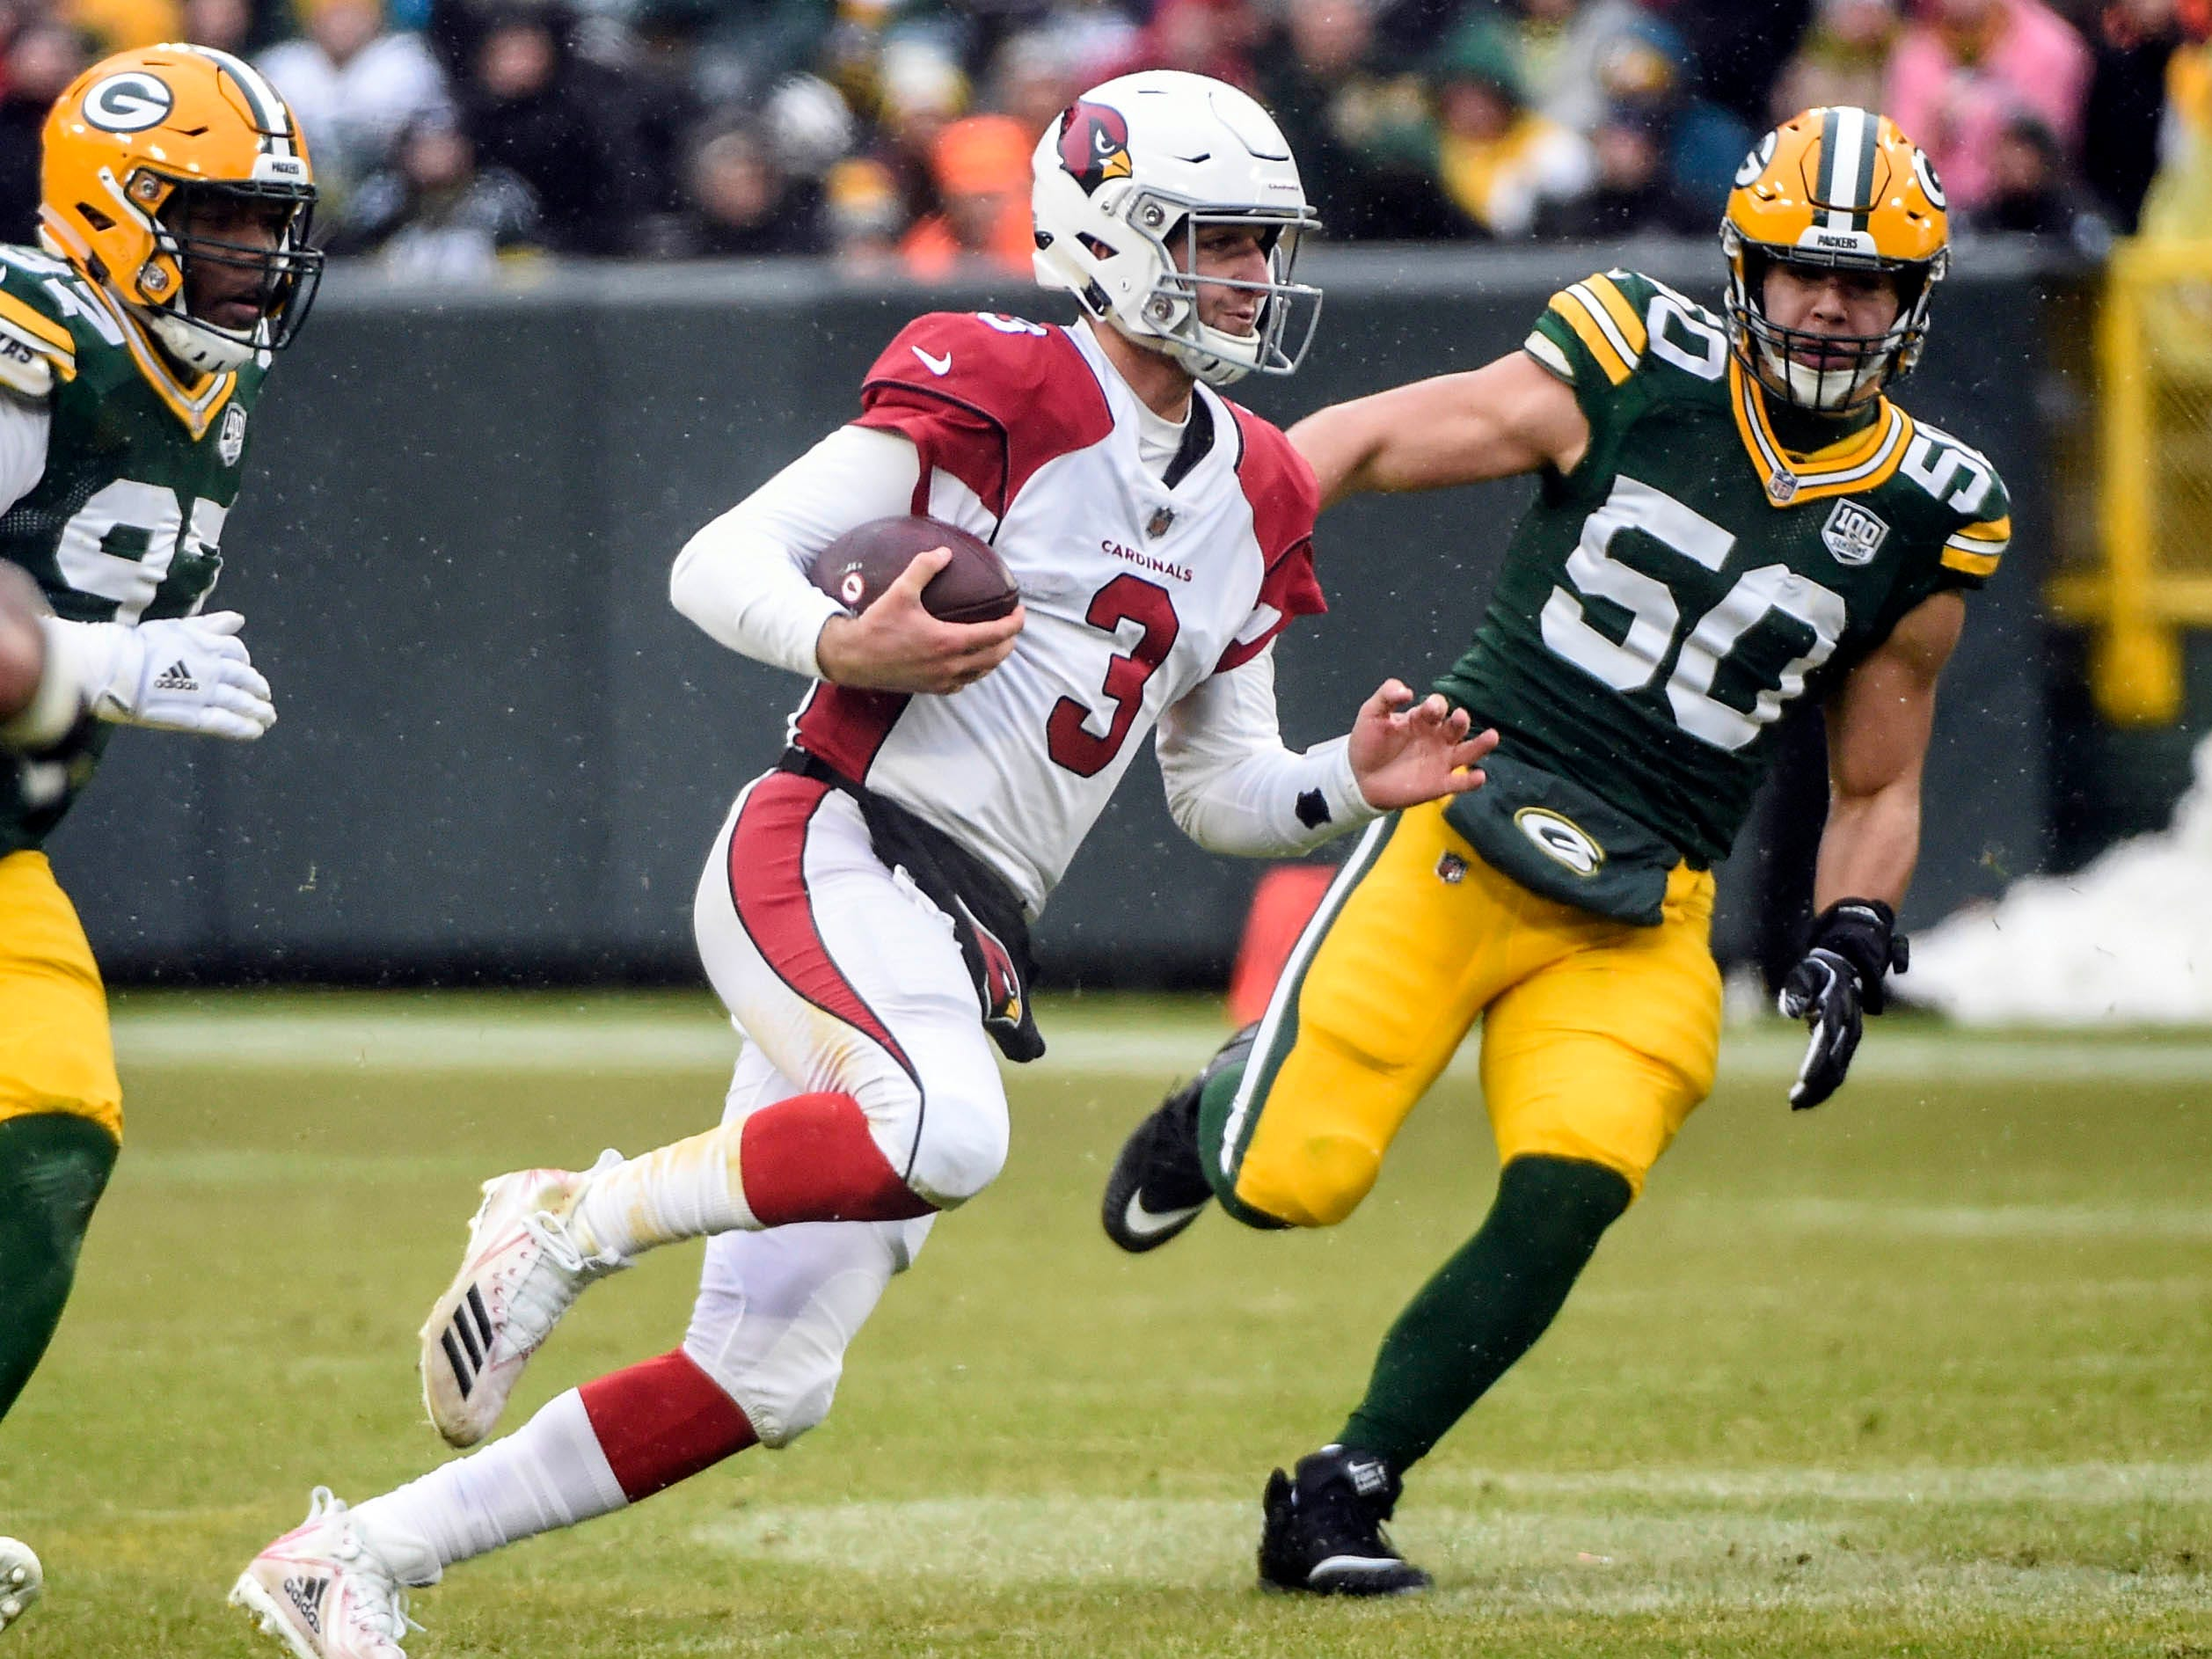 Arizona Cardinals quarterback Josh Rosen (3) scrambles past Green Bay Packers linebacker Blake Martinez (50) for a first down in the third quarter at Lambeau Field.